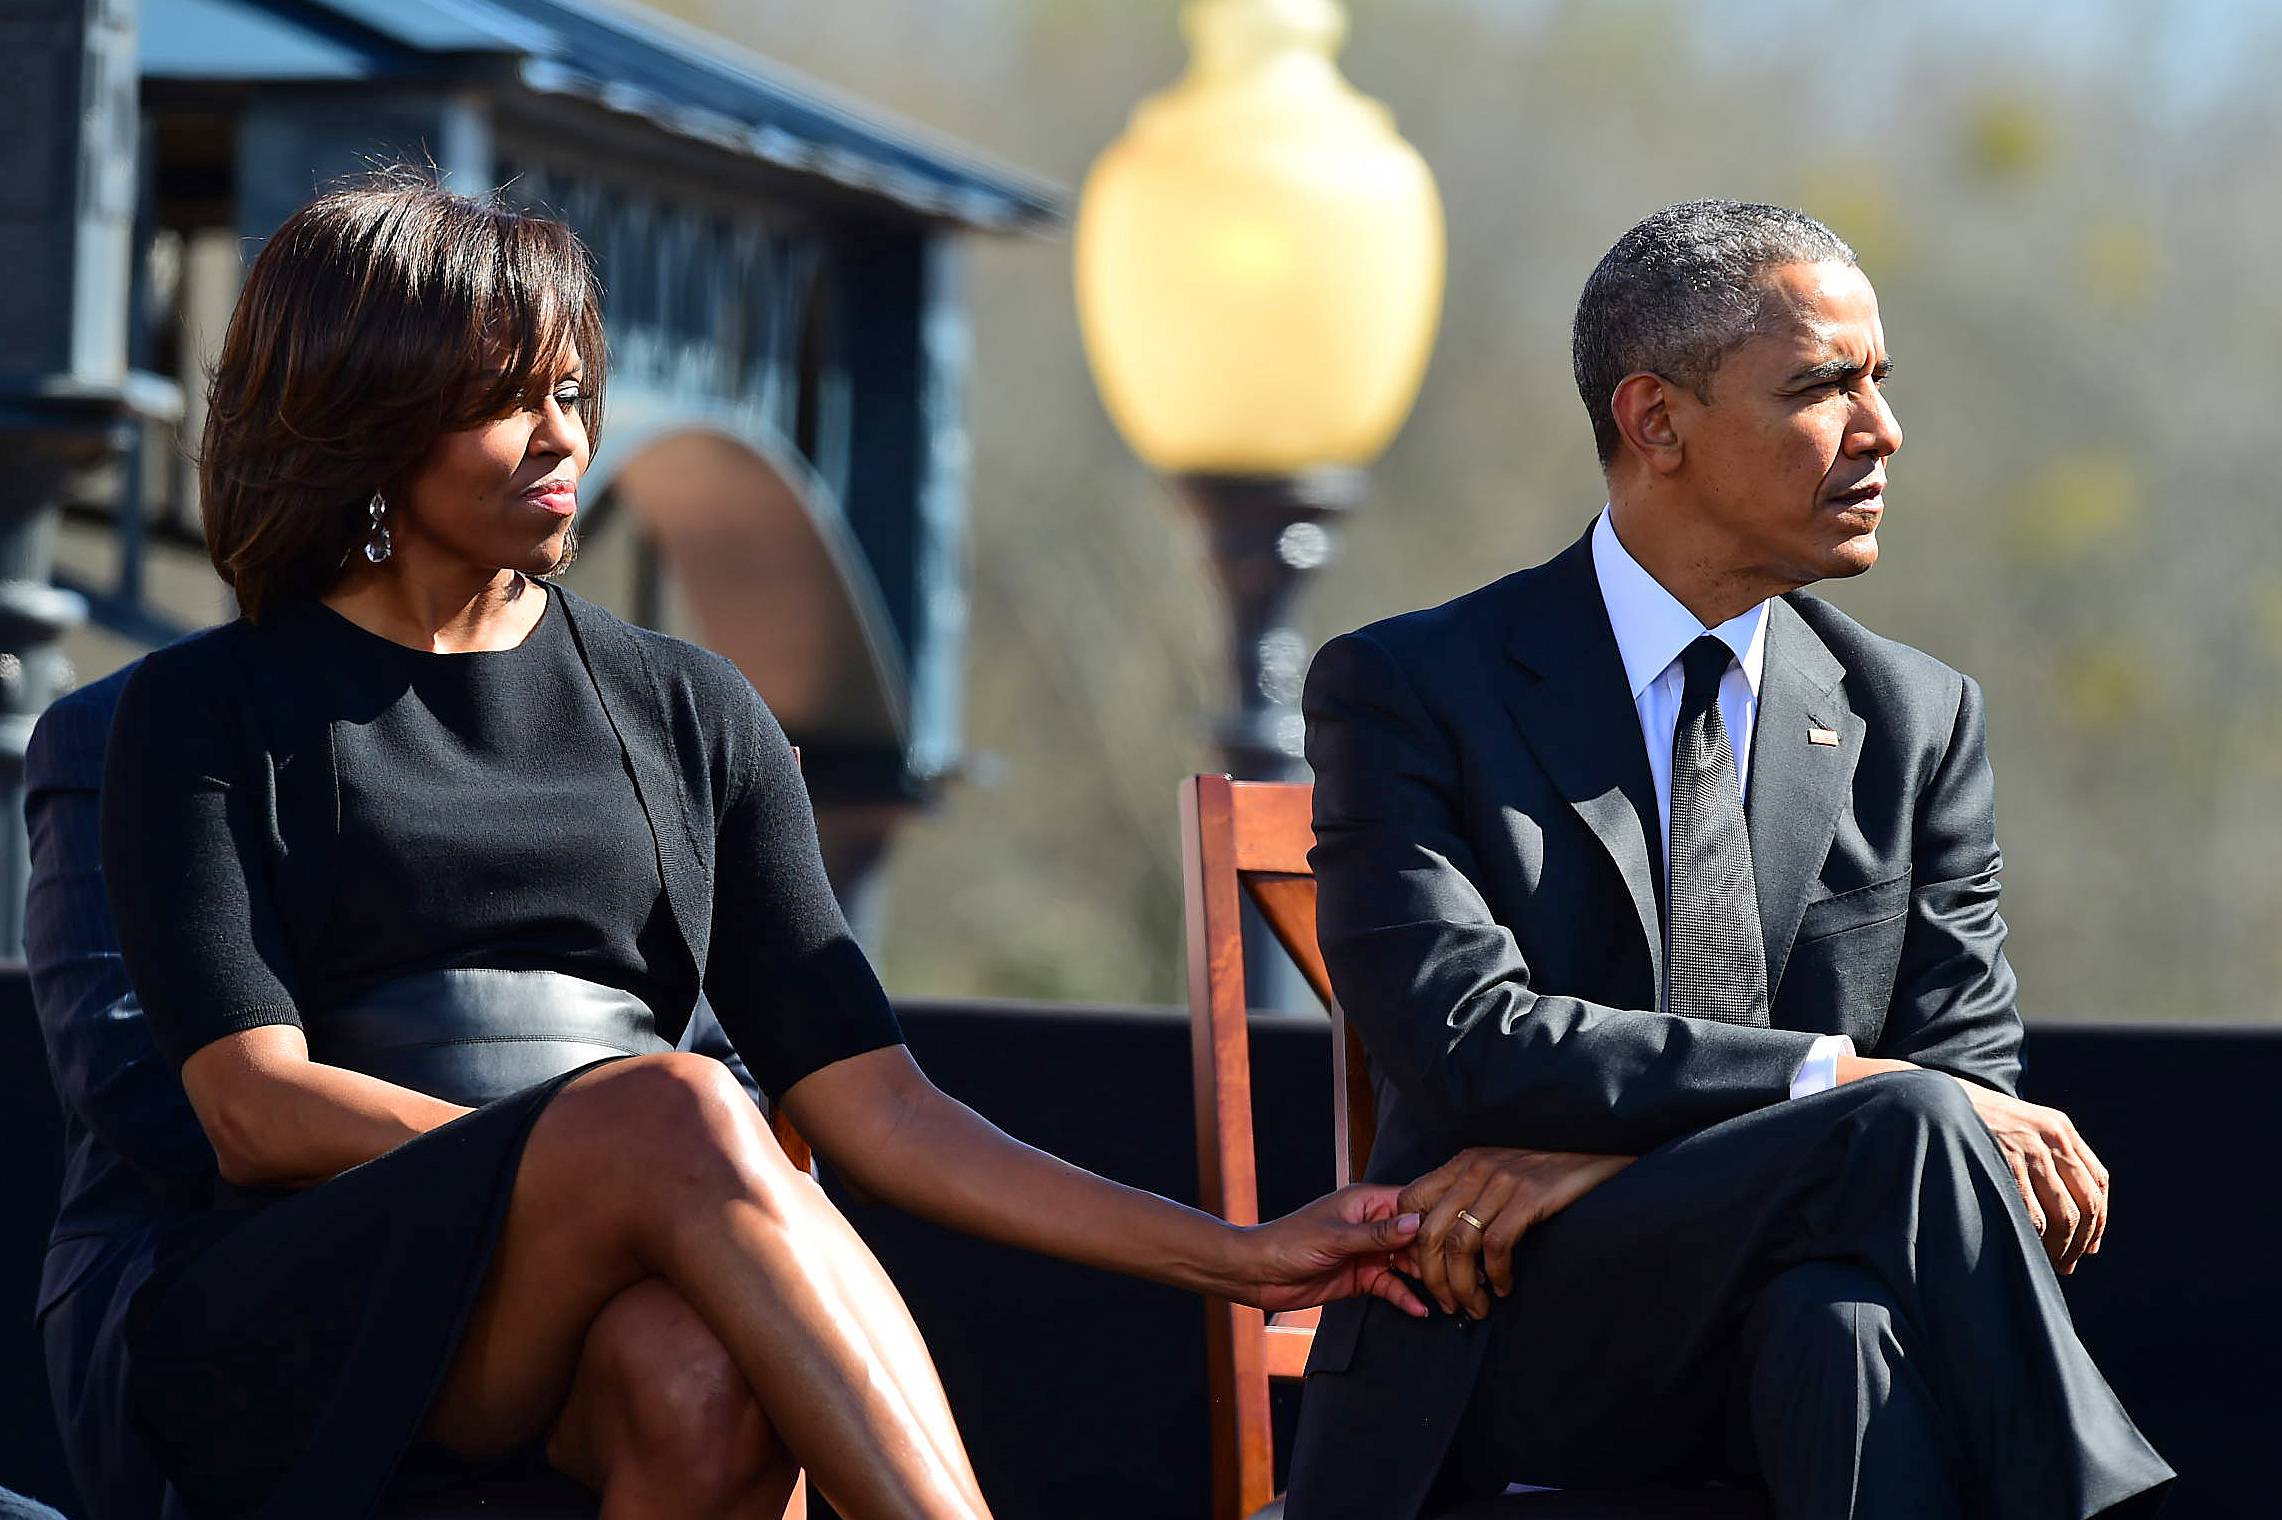 """First lady Michelle Obama holds the hand of her husband President Barack Obama as U.S. Rep. John Lewis, D-Ga., speaks before a symbolic walk across the Edmund Pettus Bridge, Saturday, March 7, 2015, in Selma, Ala. This weekend marks the 50th anniversary of """"Bloody Sunday,' a civil rights march in which protestors were beaten, trampled and tear-gassed by police at the Edmund Pettus Bridge, in Selma. (AP Photo/Bill Frakes)"""